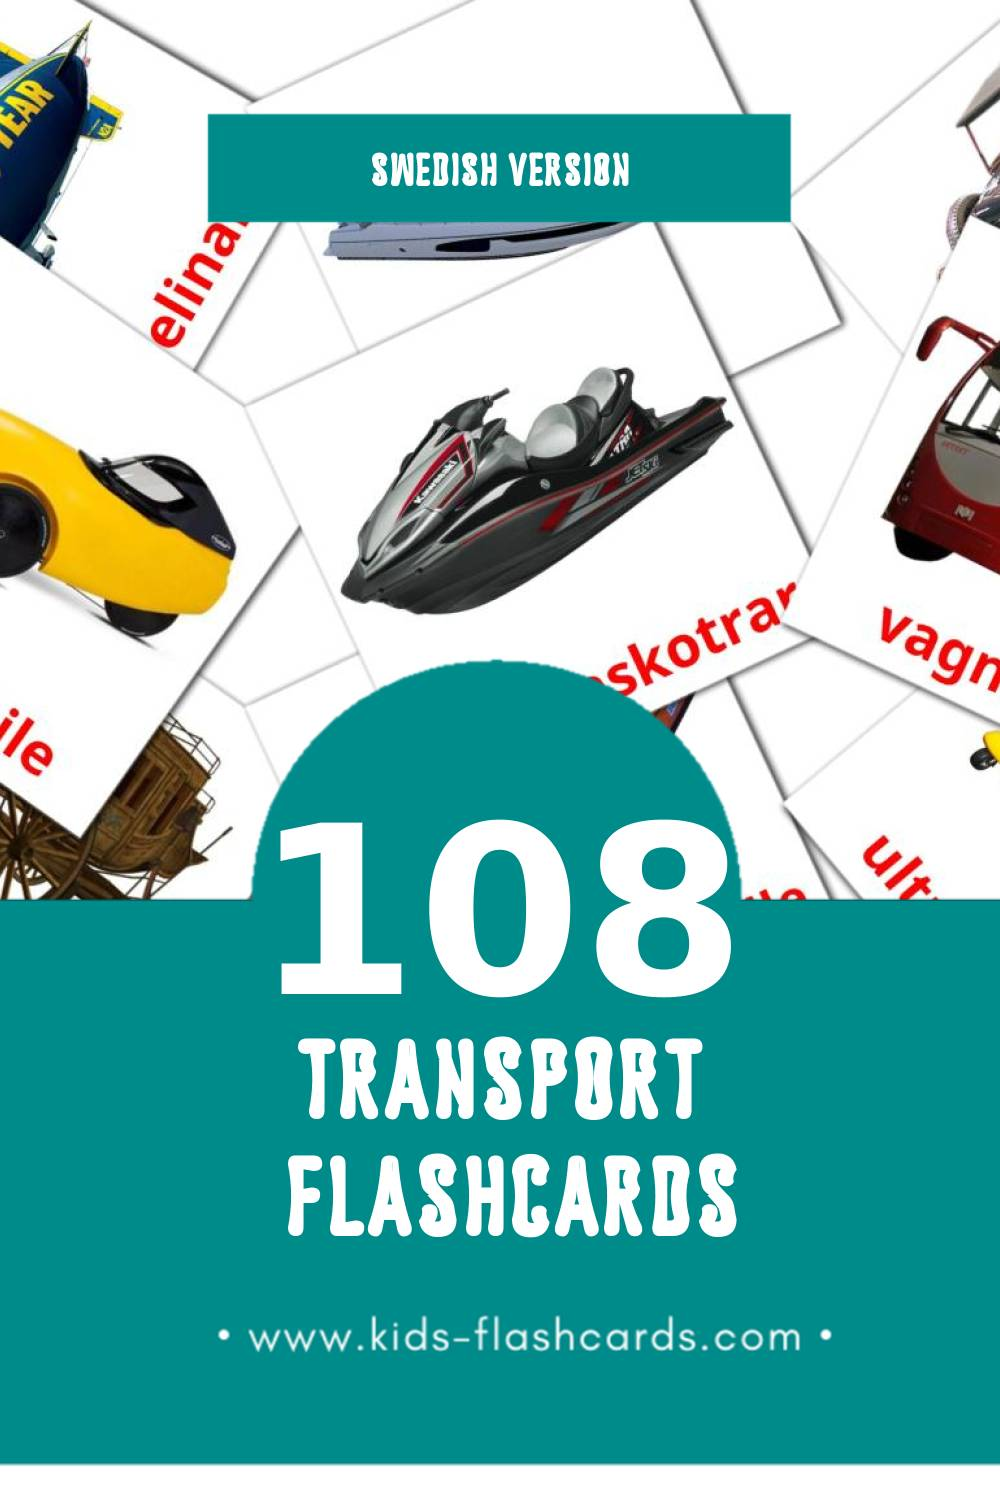 Visual Transport Flashcards for Toddlers (42 cards in Swedish)